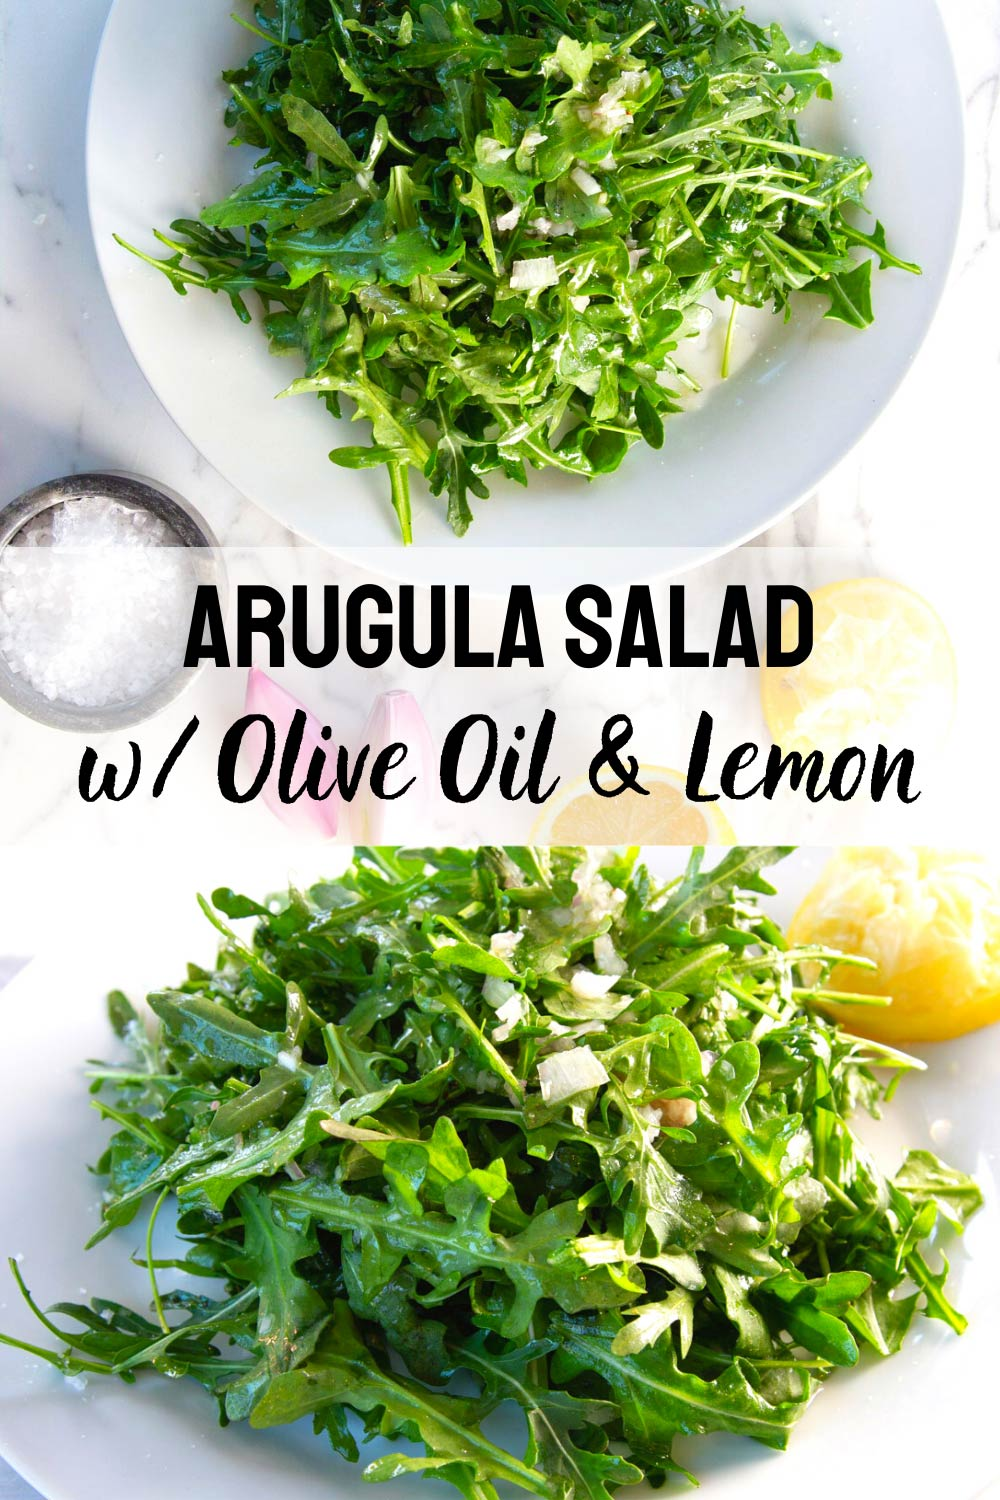 Arugula Salad With Lemon & Olive Oil